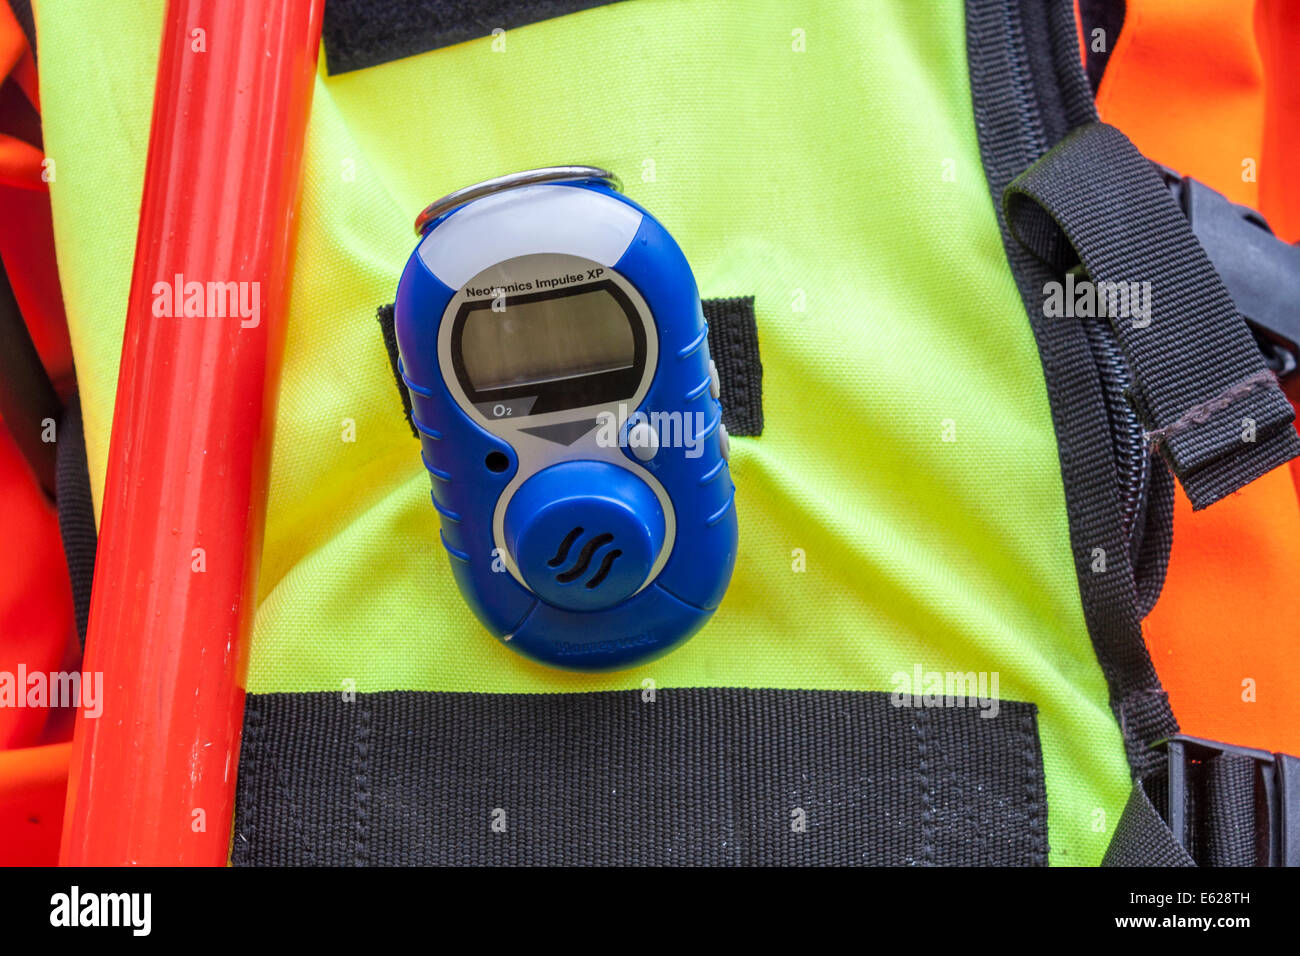 Gas Detector for use by Emergency services  on a protective clothing outfit. - Stock Image